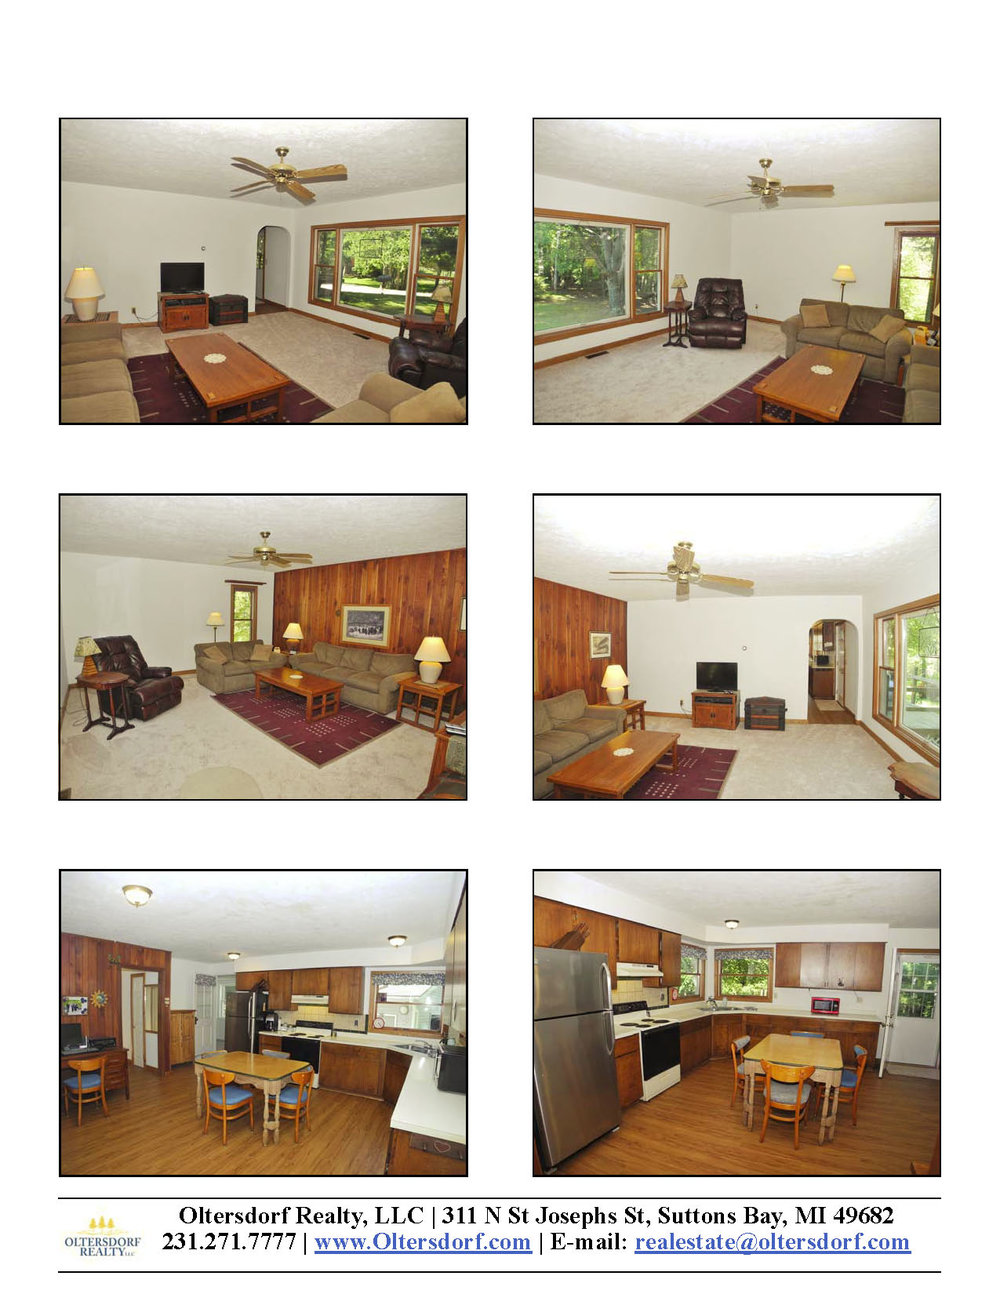 2566 S Pine View Road, Suttons Bay, MI – Affordable 3 Bedroom Suttons Bay Ranch Home for sale by Oltersdorf Realty - Marketing Packet (4).jpg